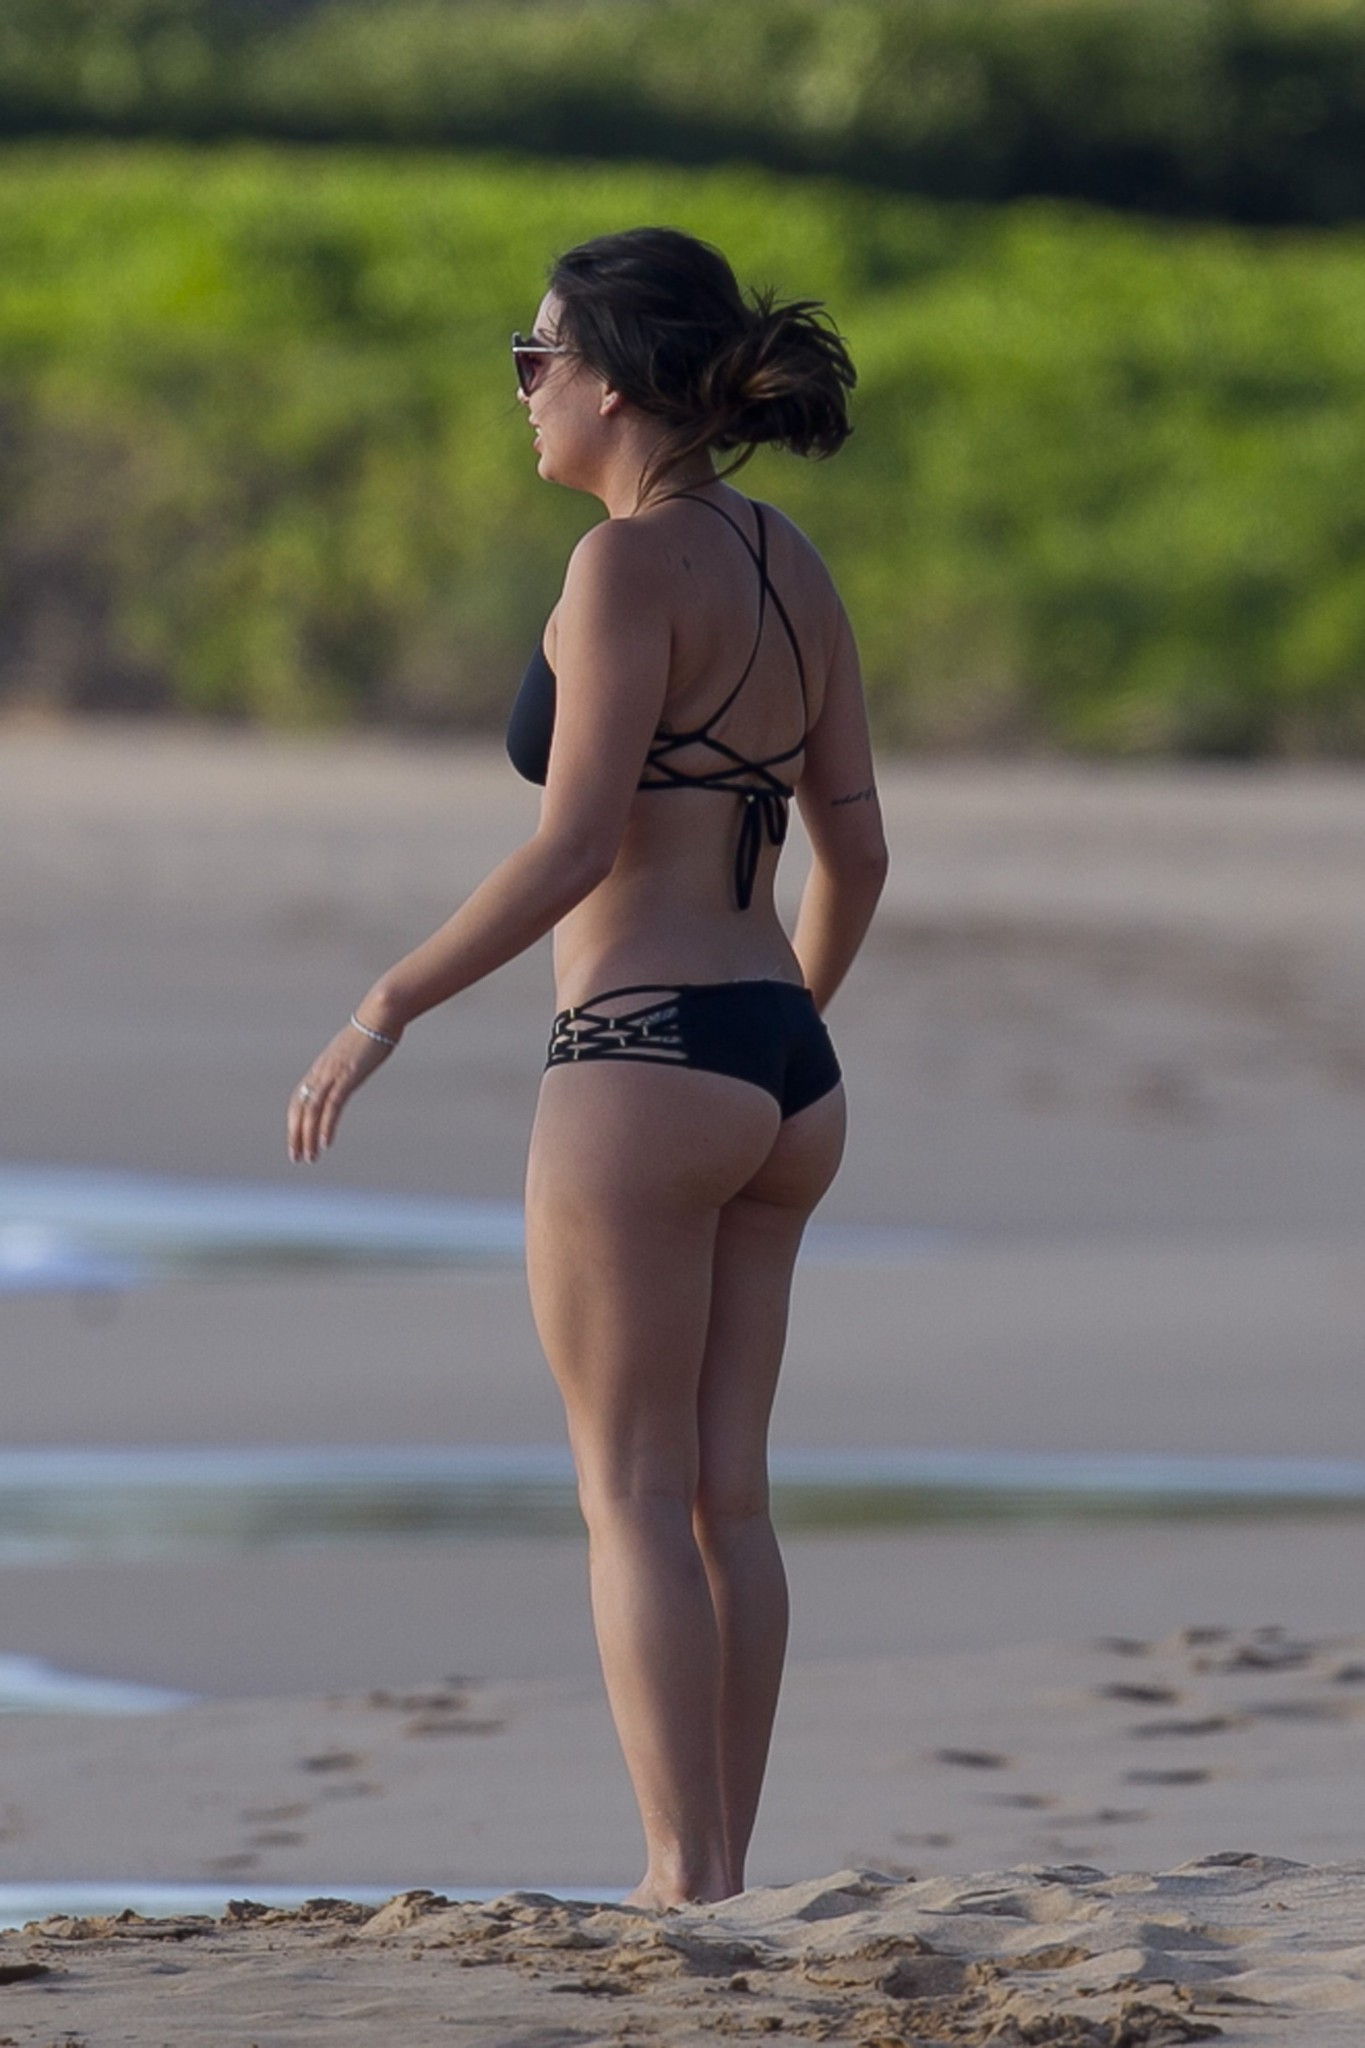 janel-parrish-wearing-a-bikini-on-the-beach-in-hawaii-16